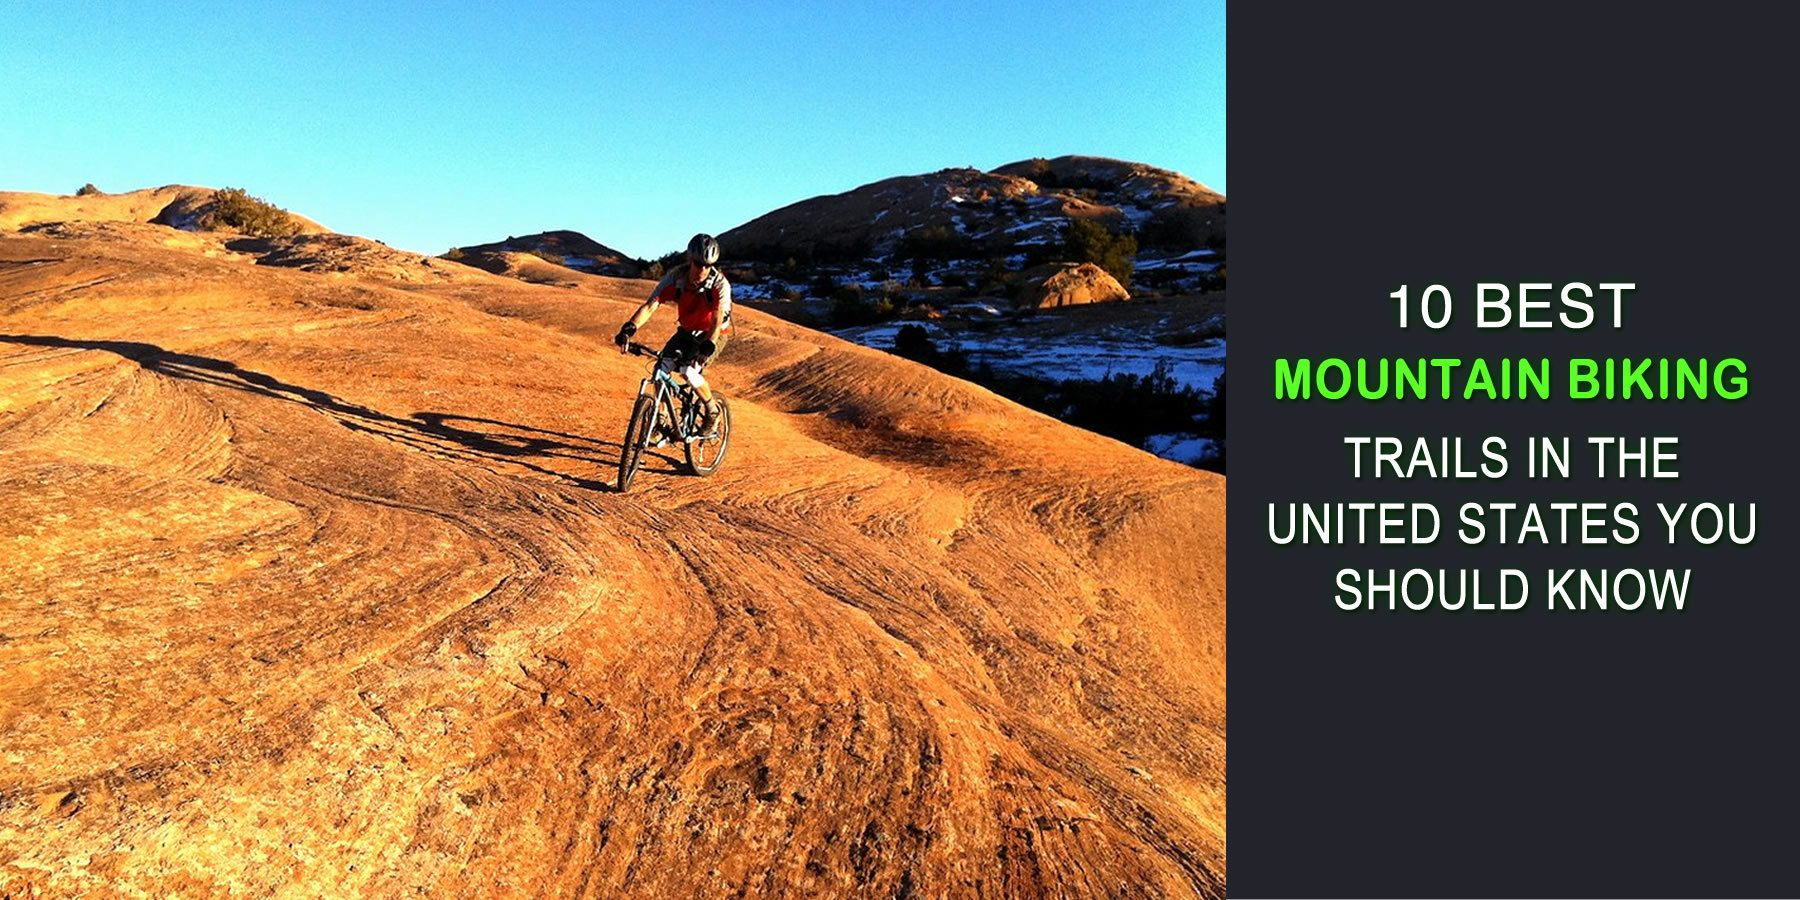 10 Best Mountain Biking Trails in the United States You Should Know